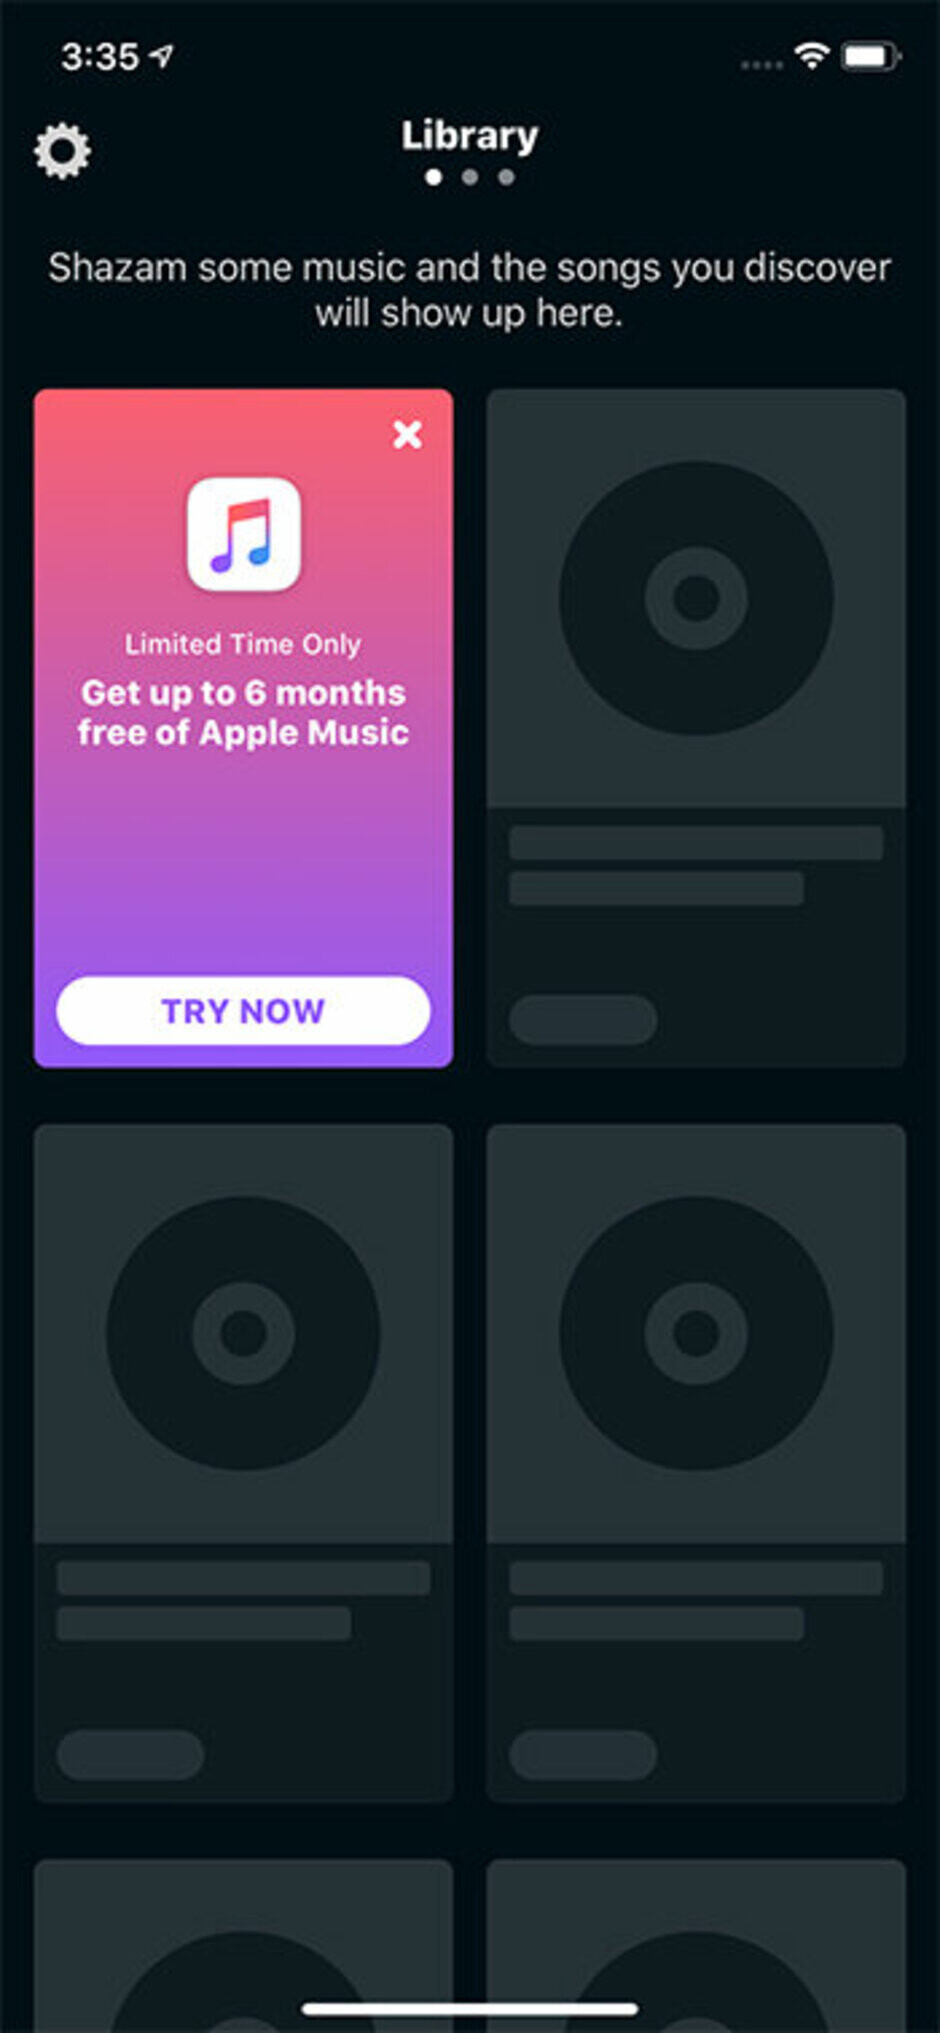 New Apple Music subscribers receiving six months of service for free